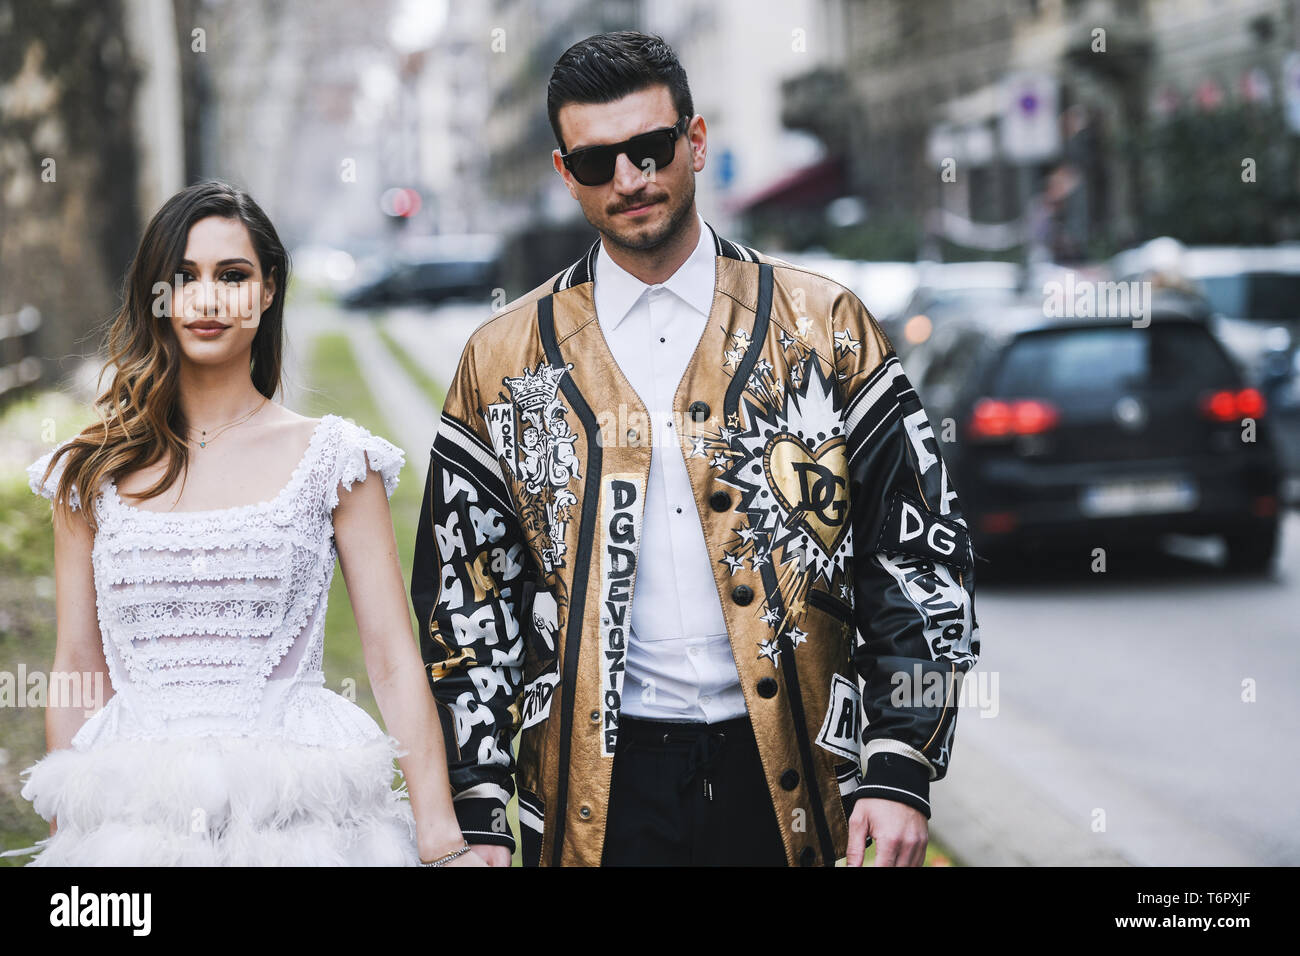 Milan, Italy - February 24, 2019: Street style – Dolce & Gabbana jacket after a fashion show during Milan Fashion Week - MFWFW19 - Stock Image